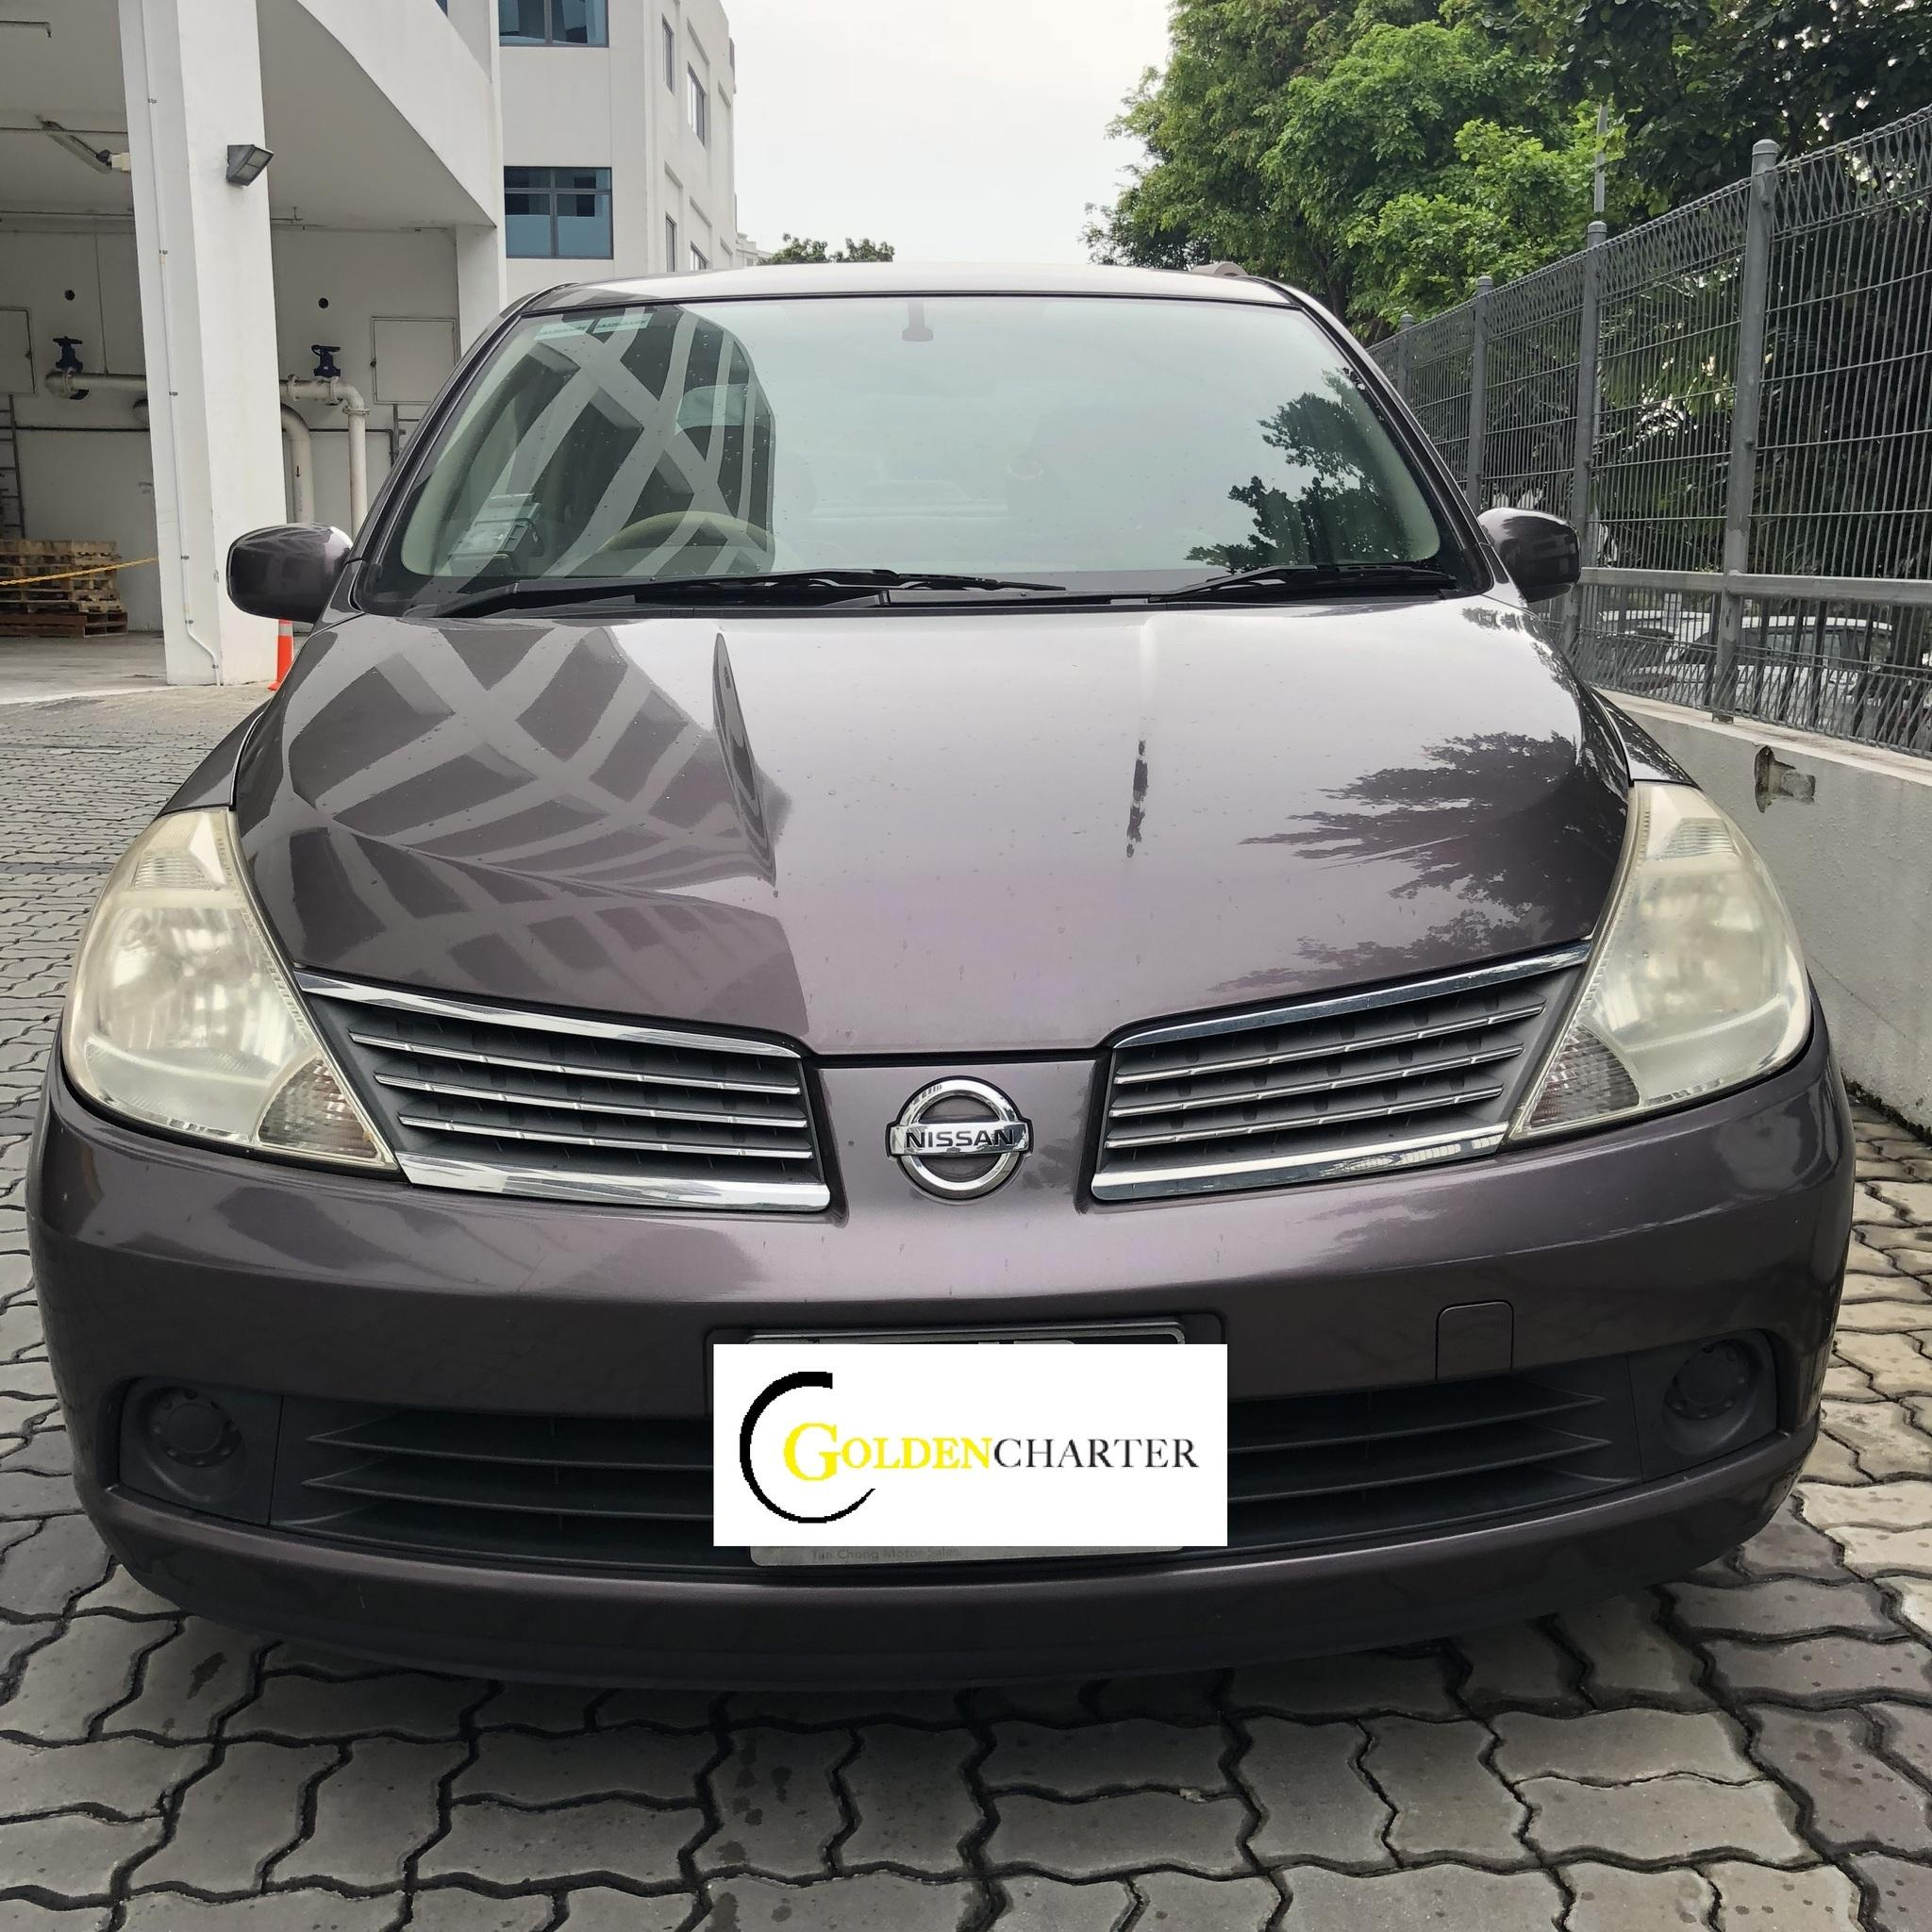 Nissan Latio $54 Toyota Vios Wish Altis Car Axio Premio Allion Camry Estima Honda Jazz Fit Stream Civic Cars Hyundai Avante Mazda 3 2 For Rent Lease To Own Grab Rental Gojek Or Personal Use Low price and Cheap Cars